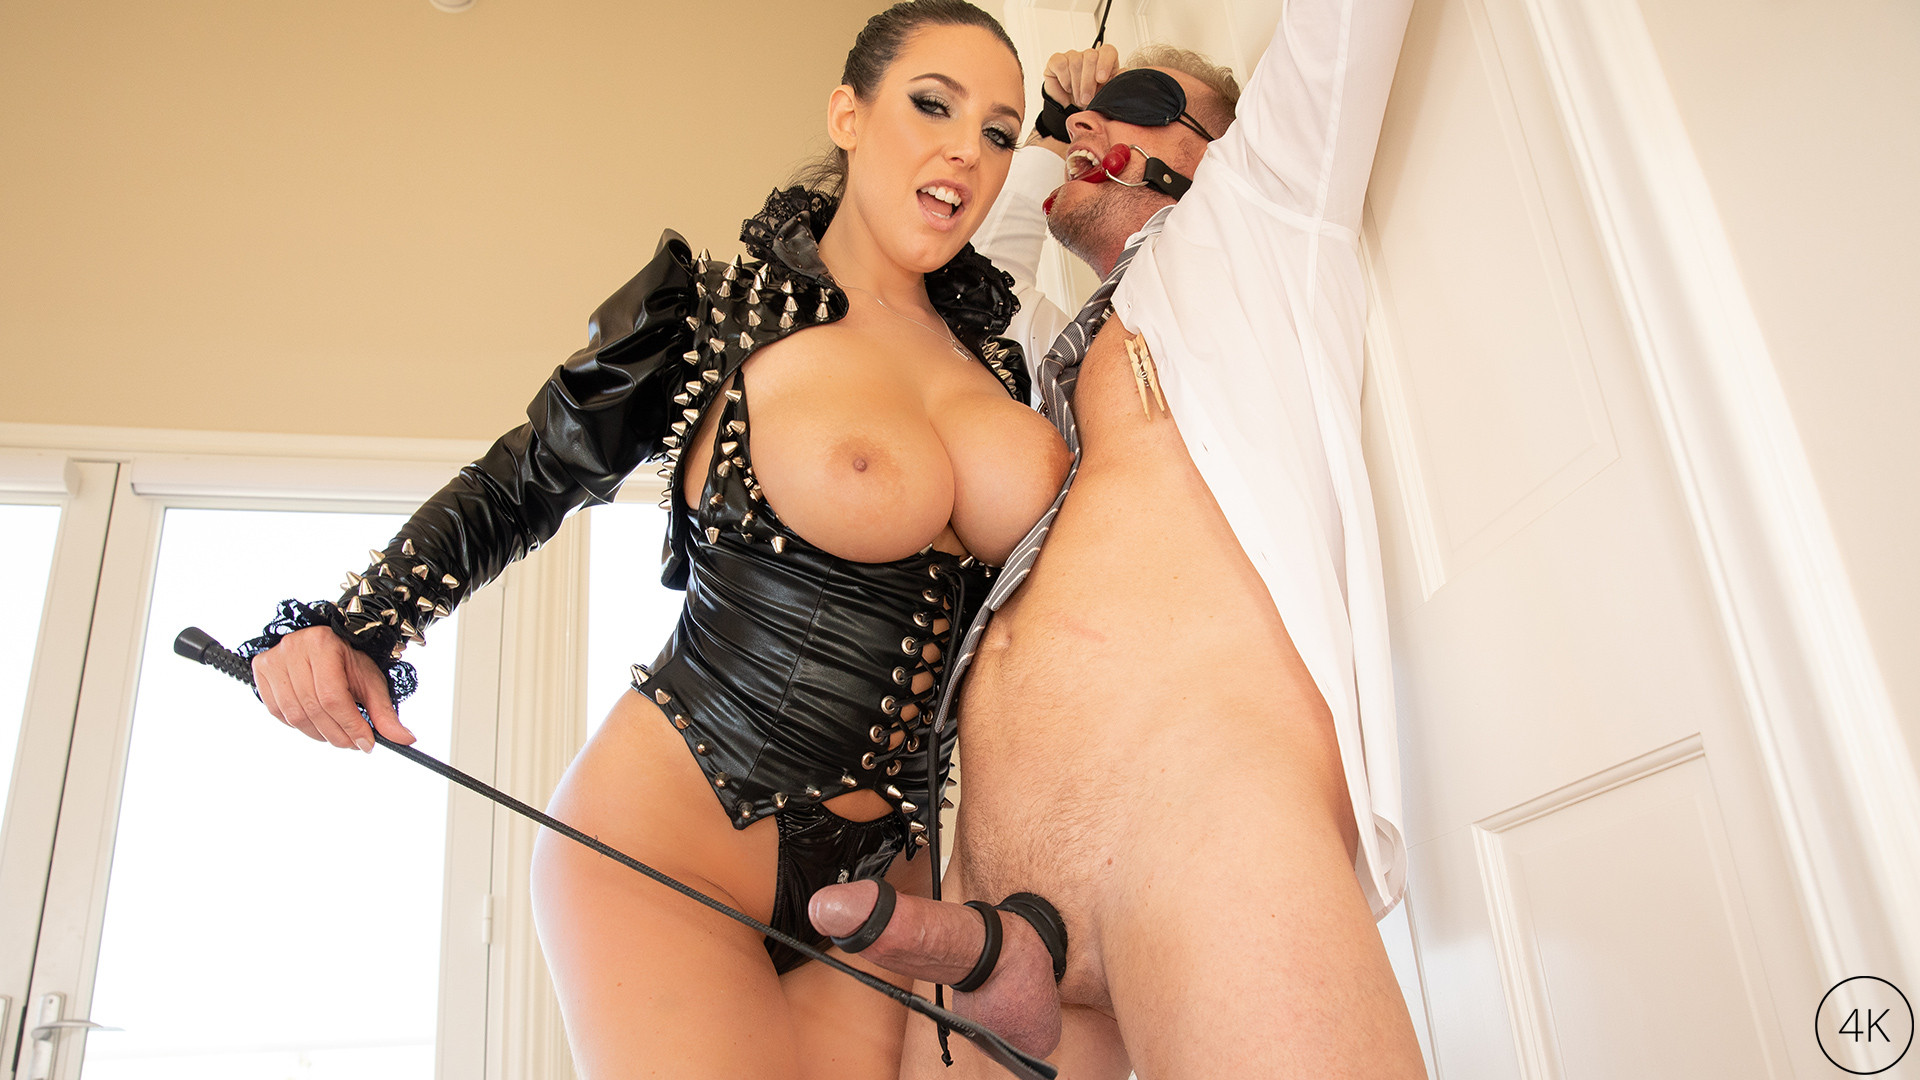 Download JulesJordan.com - Double D Discipline With Angela White